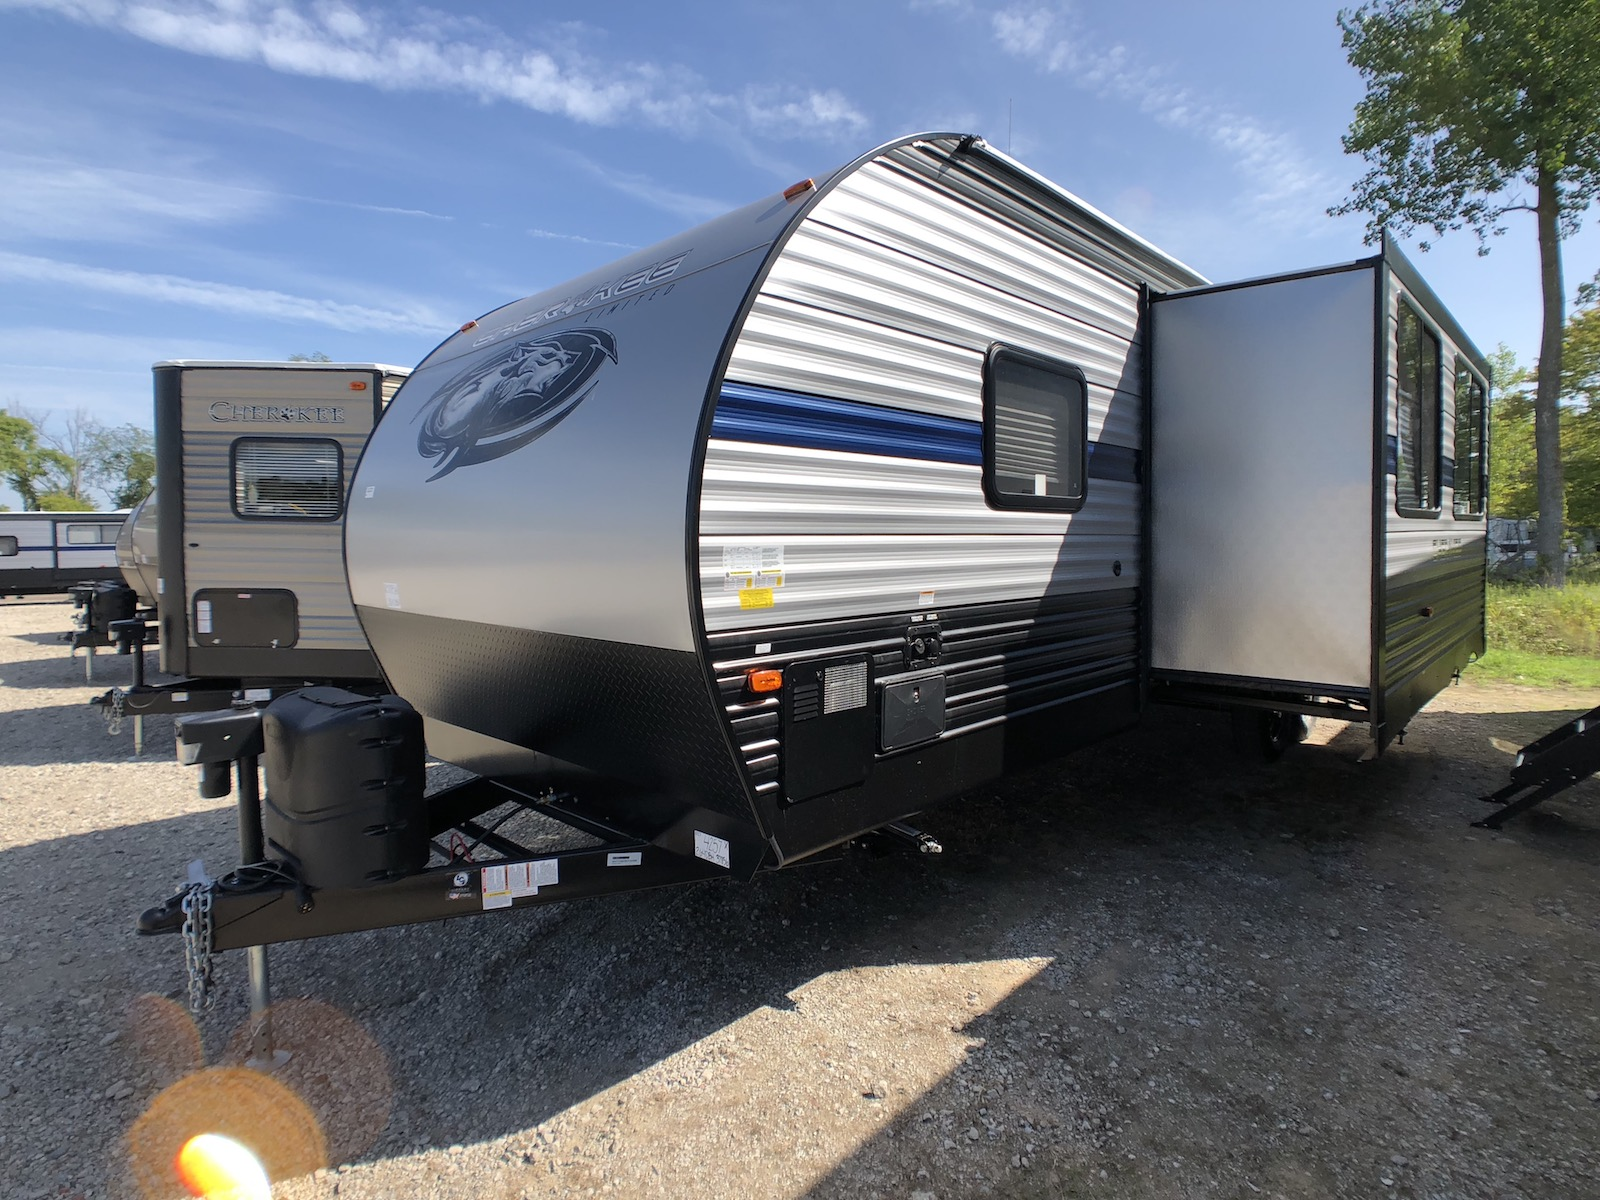 Best Bunkhouse Travel Trailer 2020 2020 Cherokee 264DBH Bunk House Travel Trailer   Tri City RV